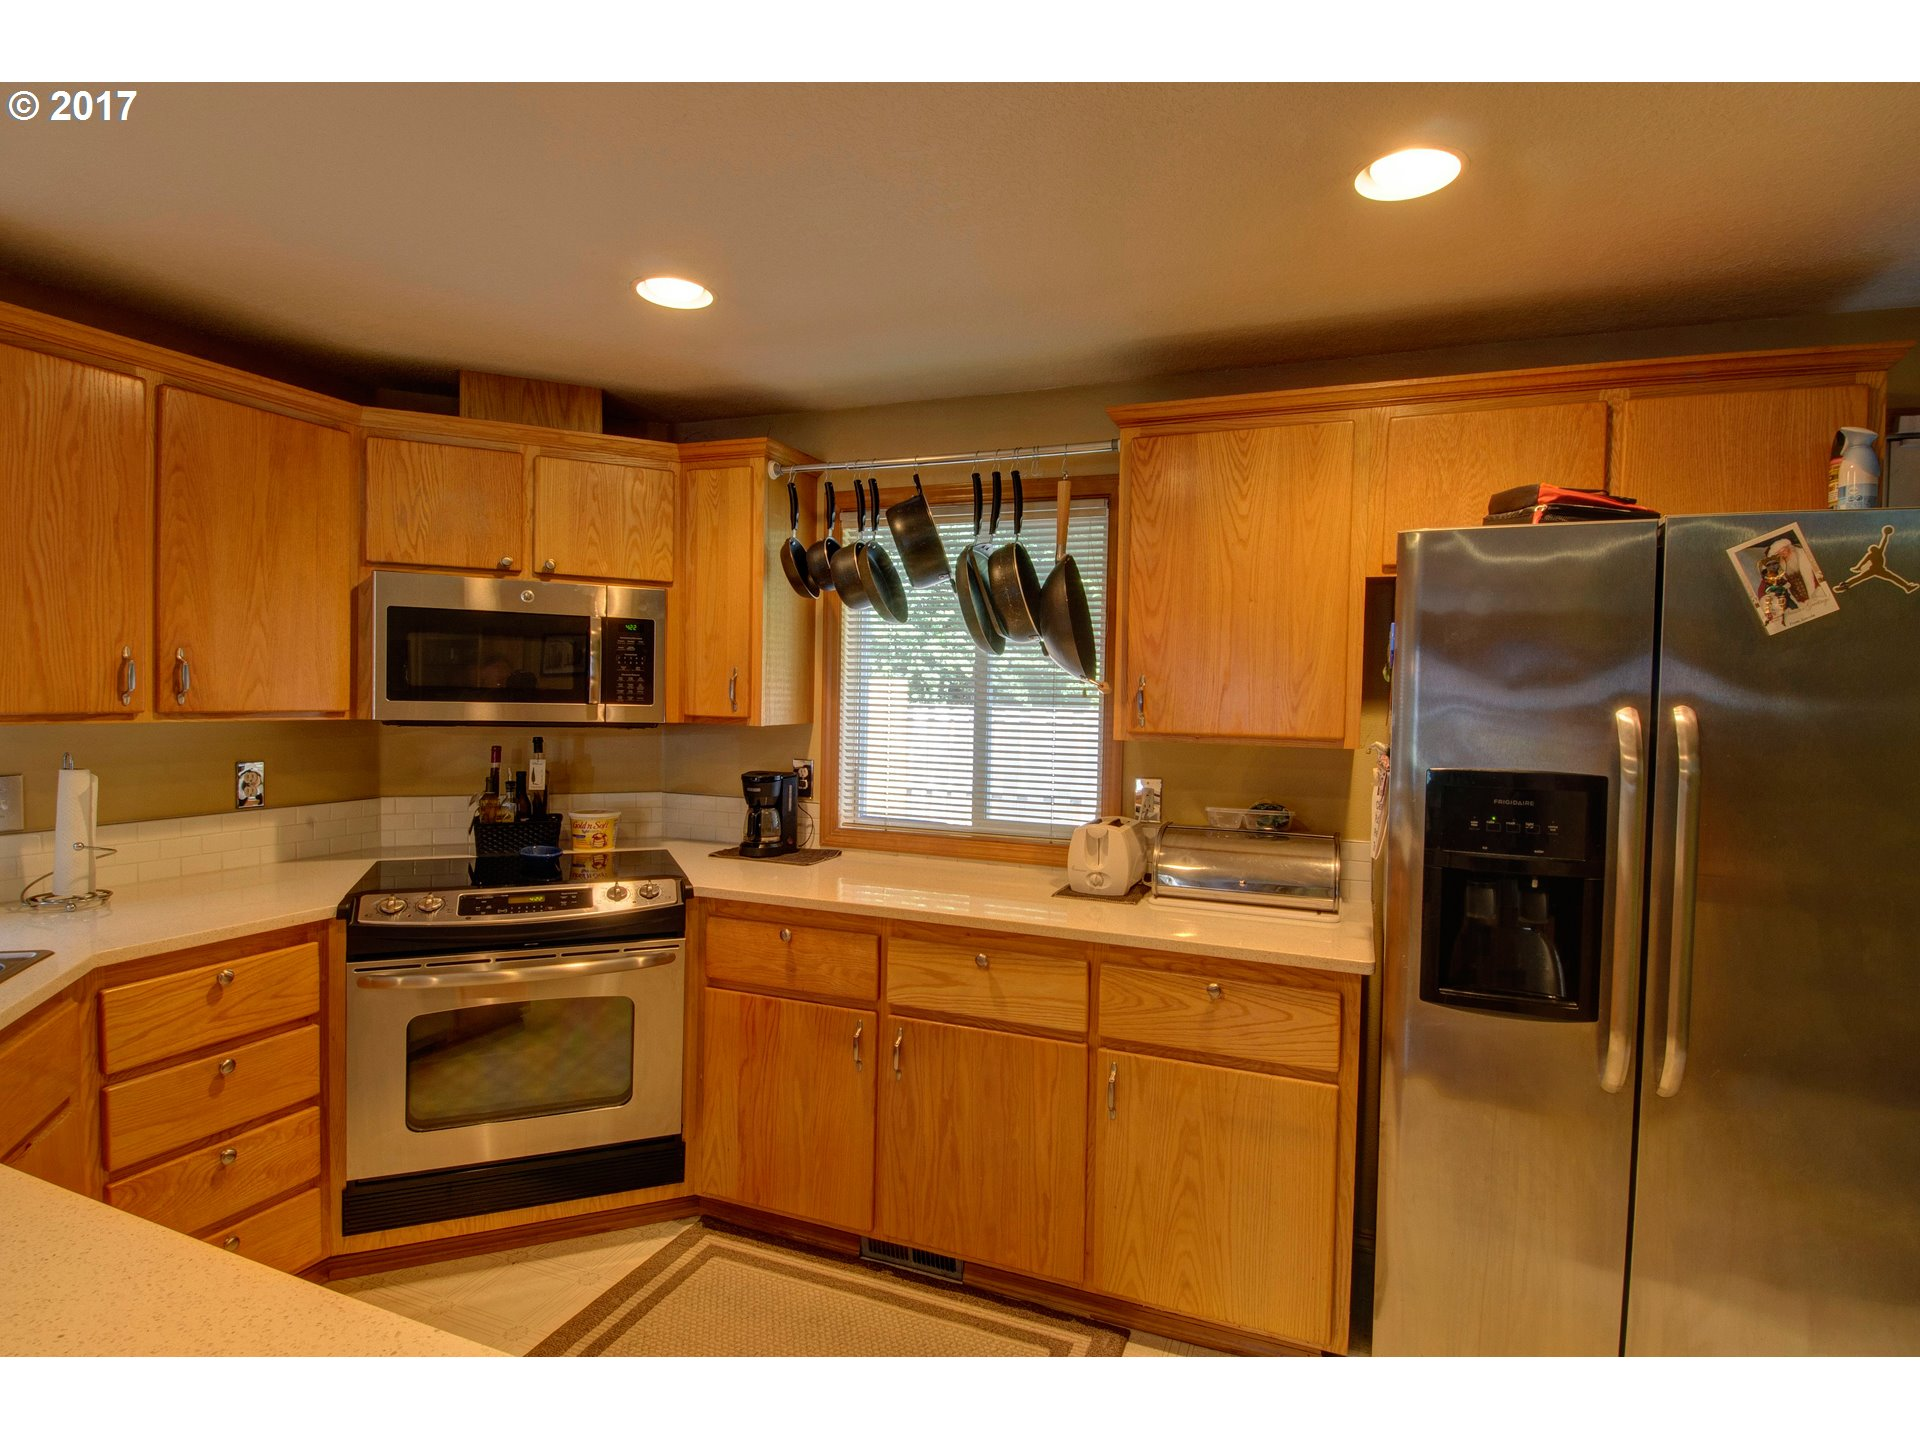 1128 SW 182ND AVE Beaverton, OR 97003 - MLS #: 17126649